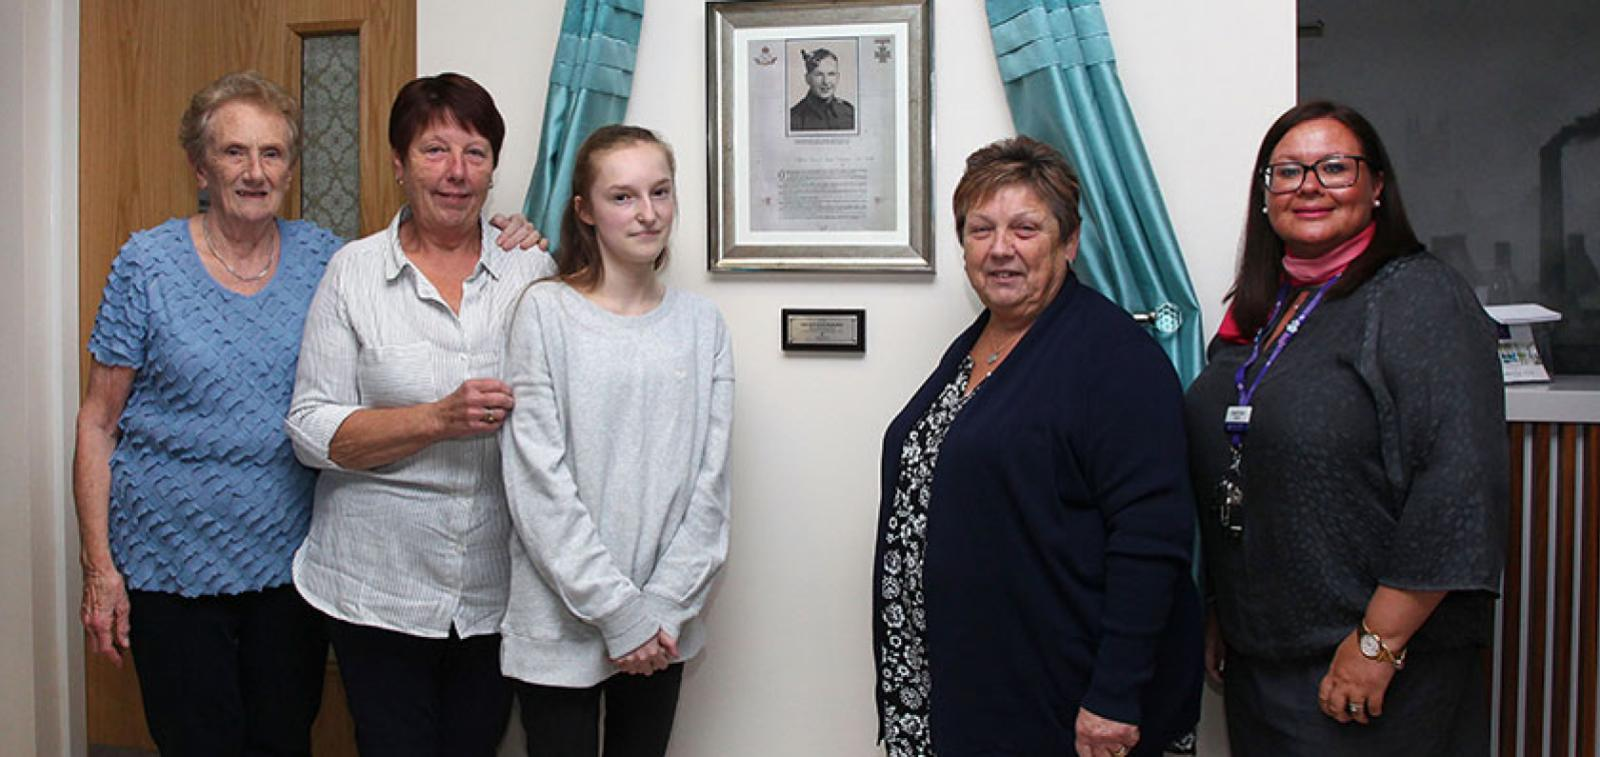 Staff, residents and relatives of Lance Sgt Baskeyfield next to the plaque that was unveiled in his honour.